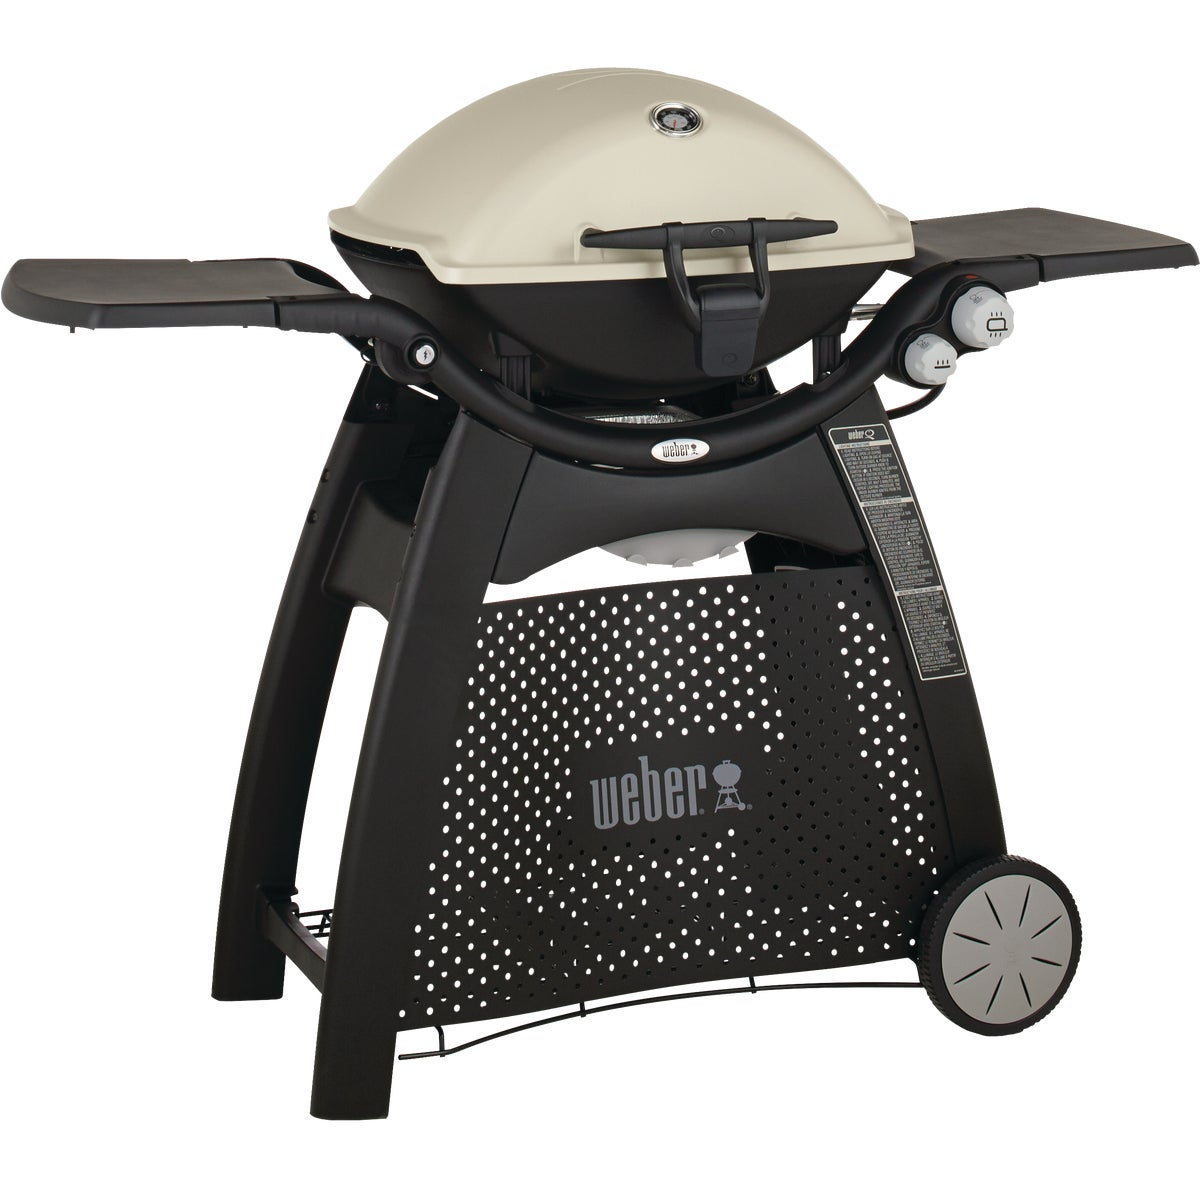 Q3200 LP GAS GRILL - 57060001 by Weber